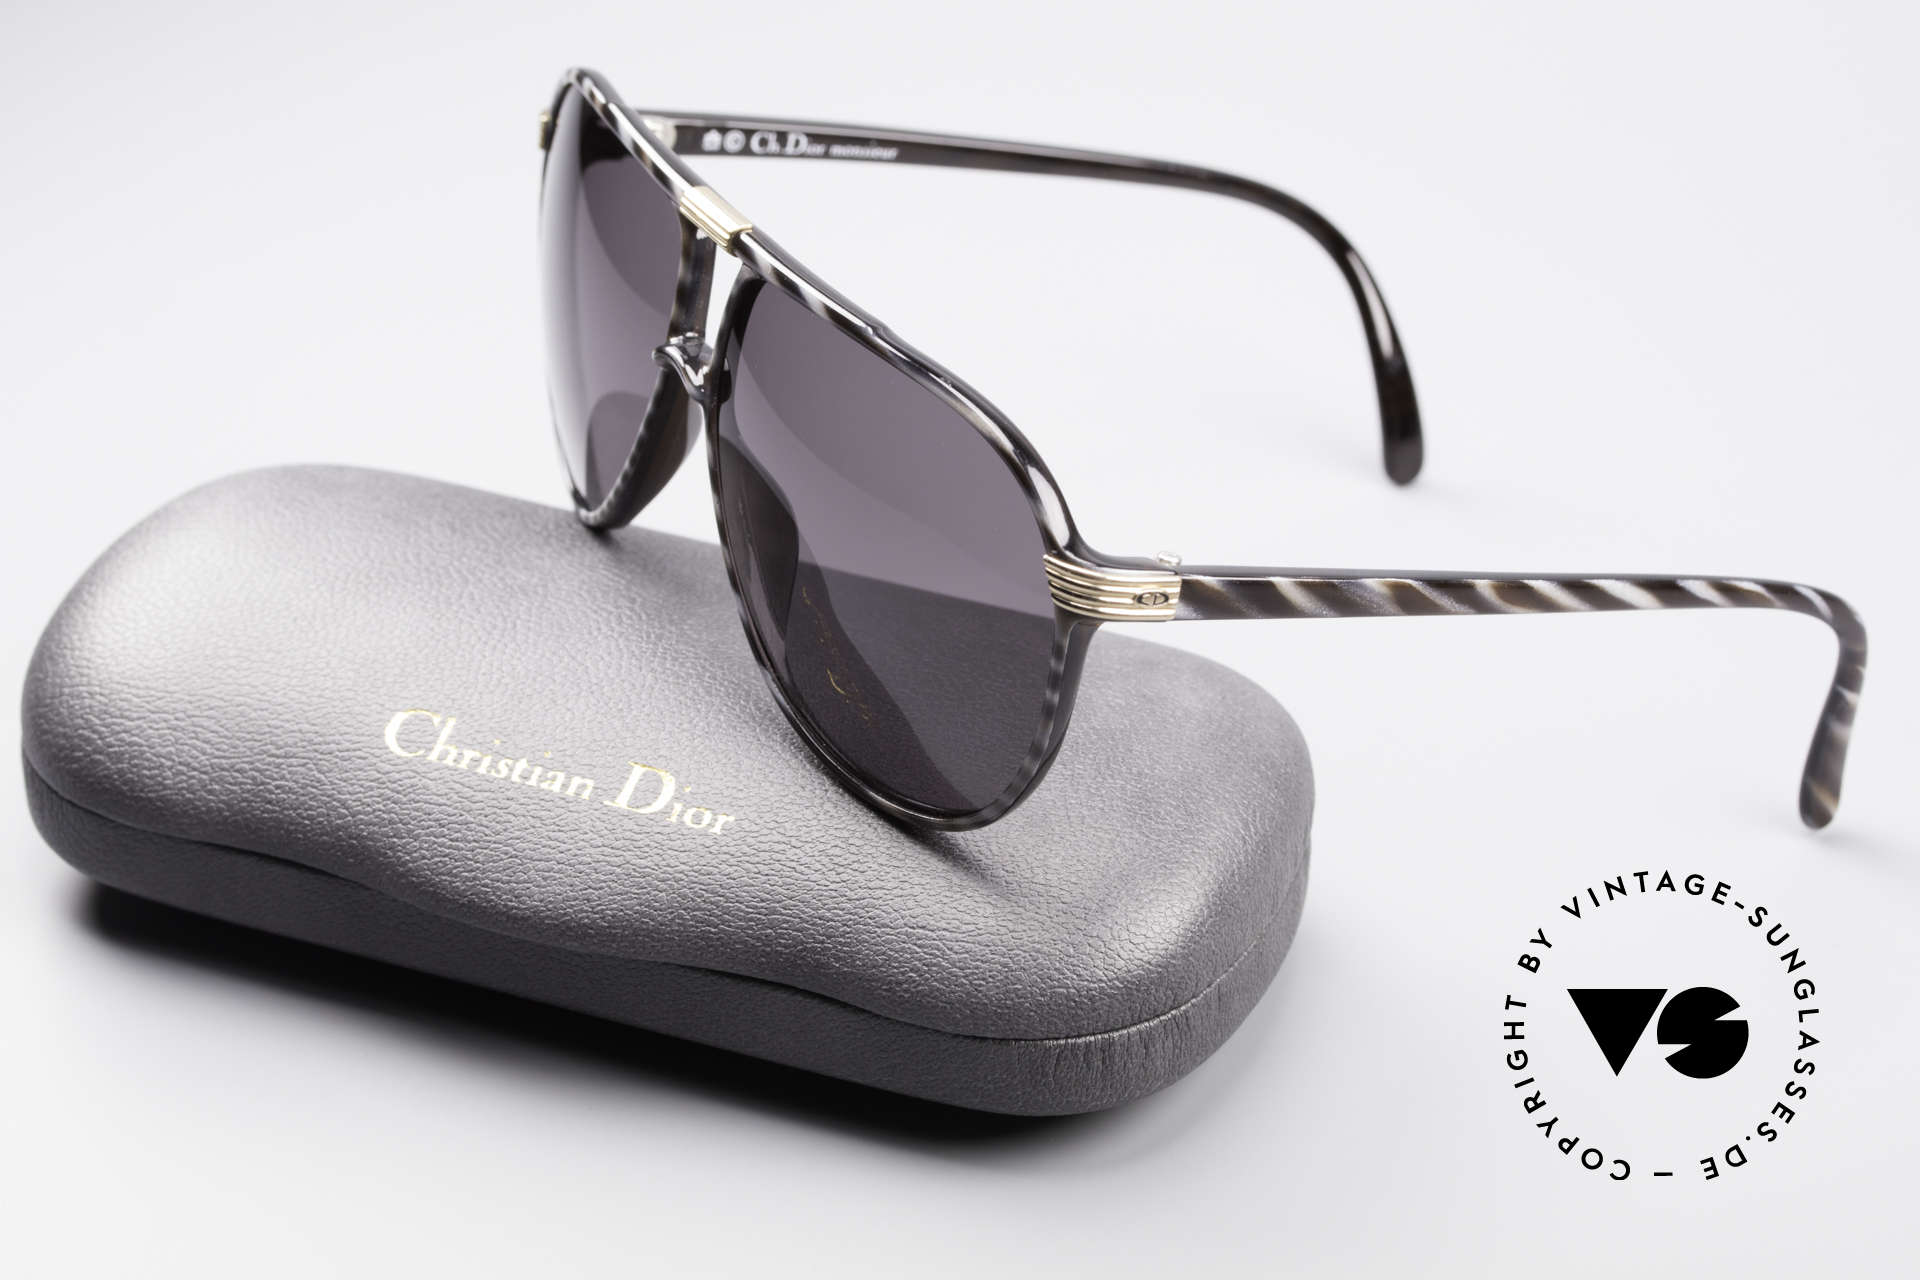 Christian Dior 2300 80's Monsieur Sunglasses, frame in size 60/11 with noble 'horn/black' coloring, Made for Men